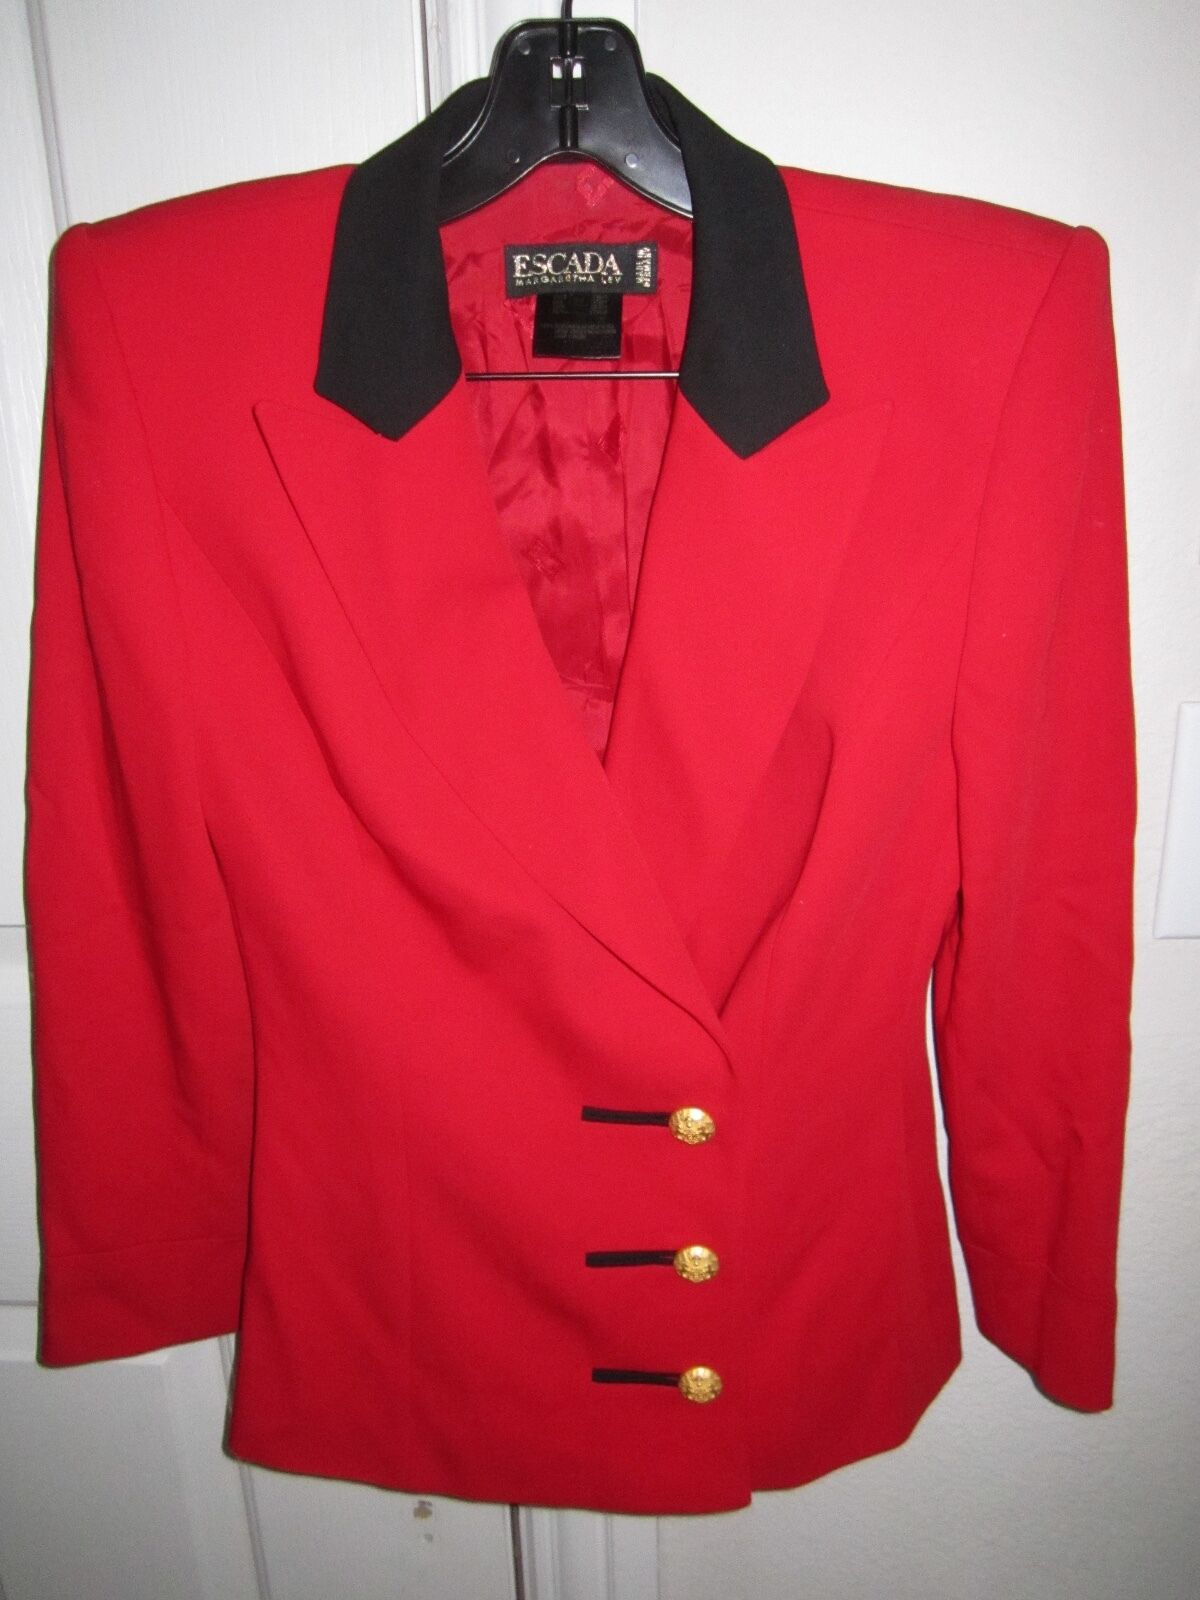 ESCADA MARGARETHA LEY RED DOUBLE BREASTED BLAZER - SIZE 34 - MADE IN GERMANY